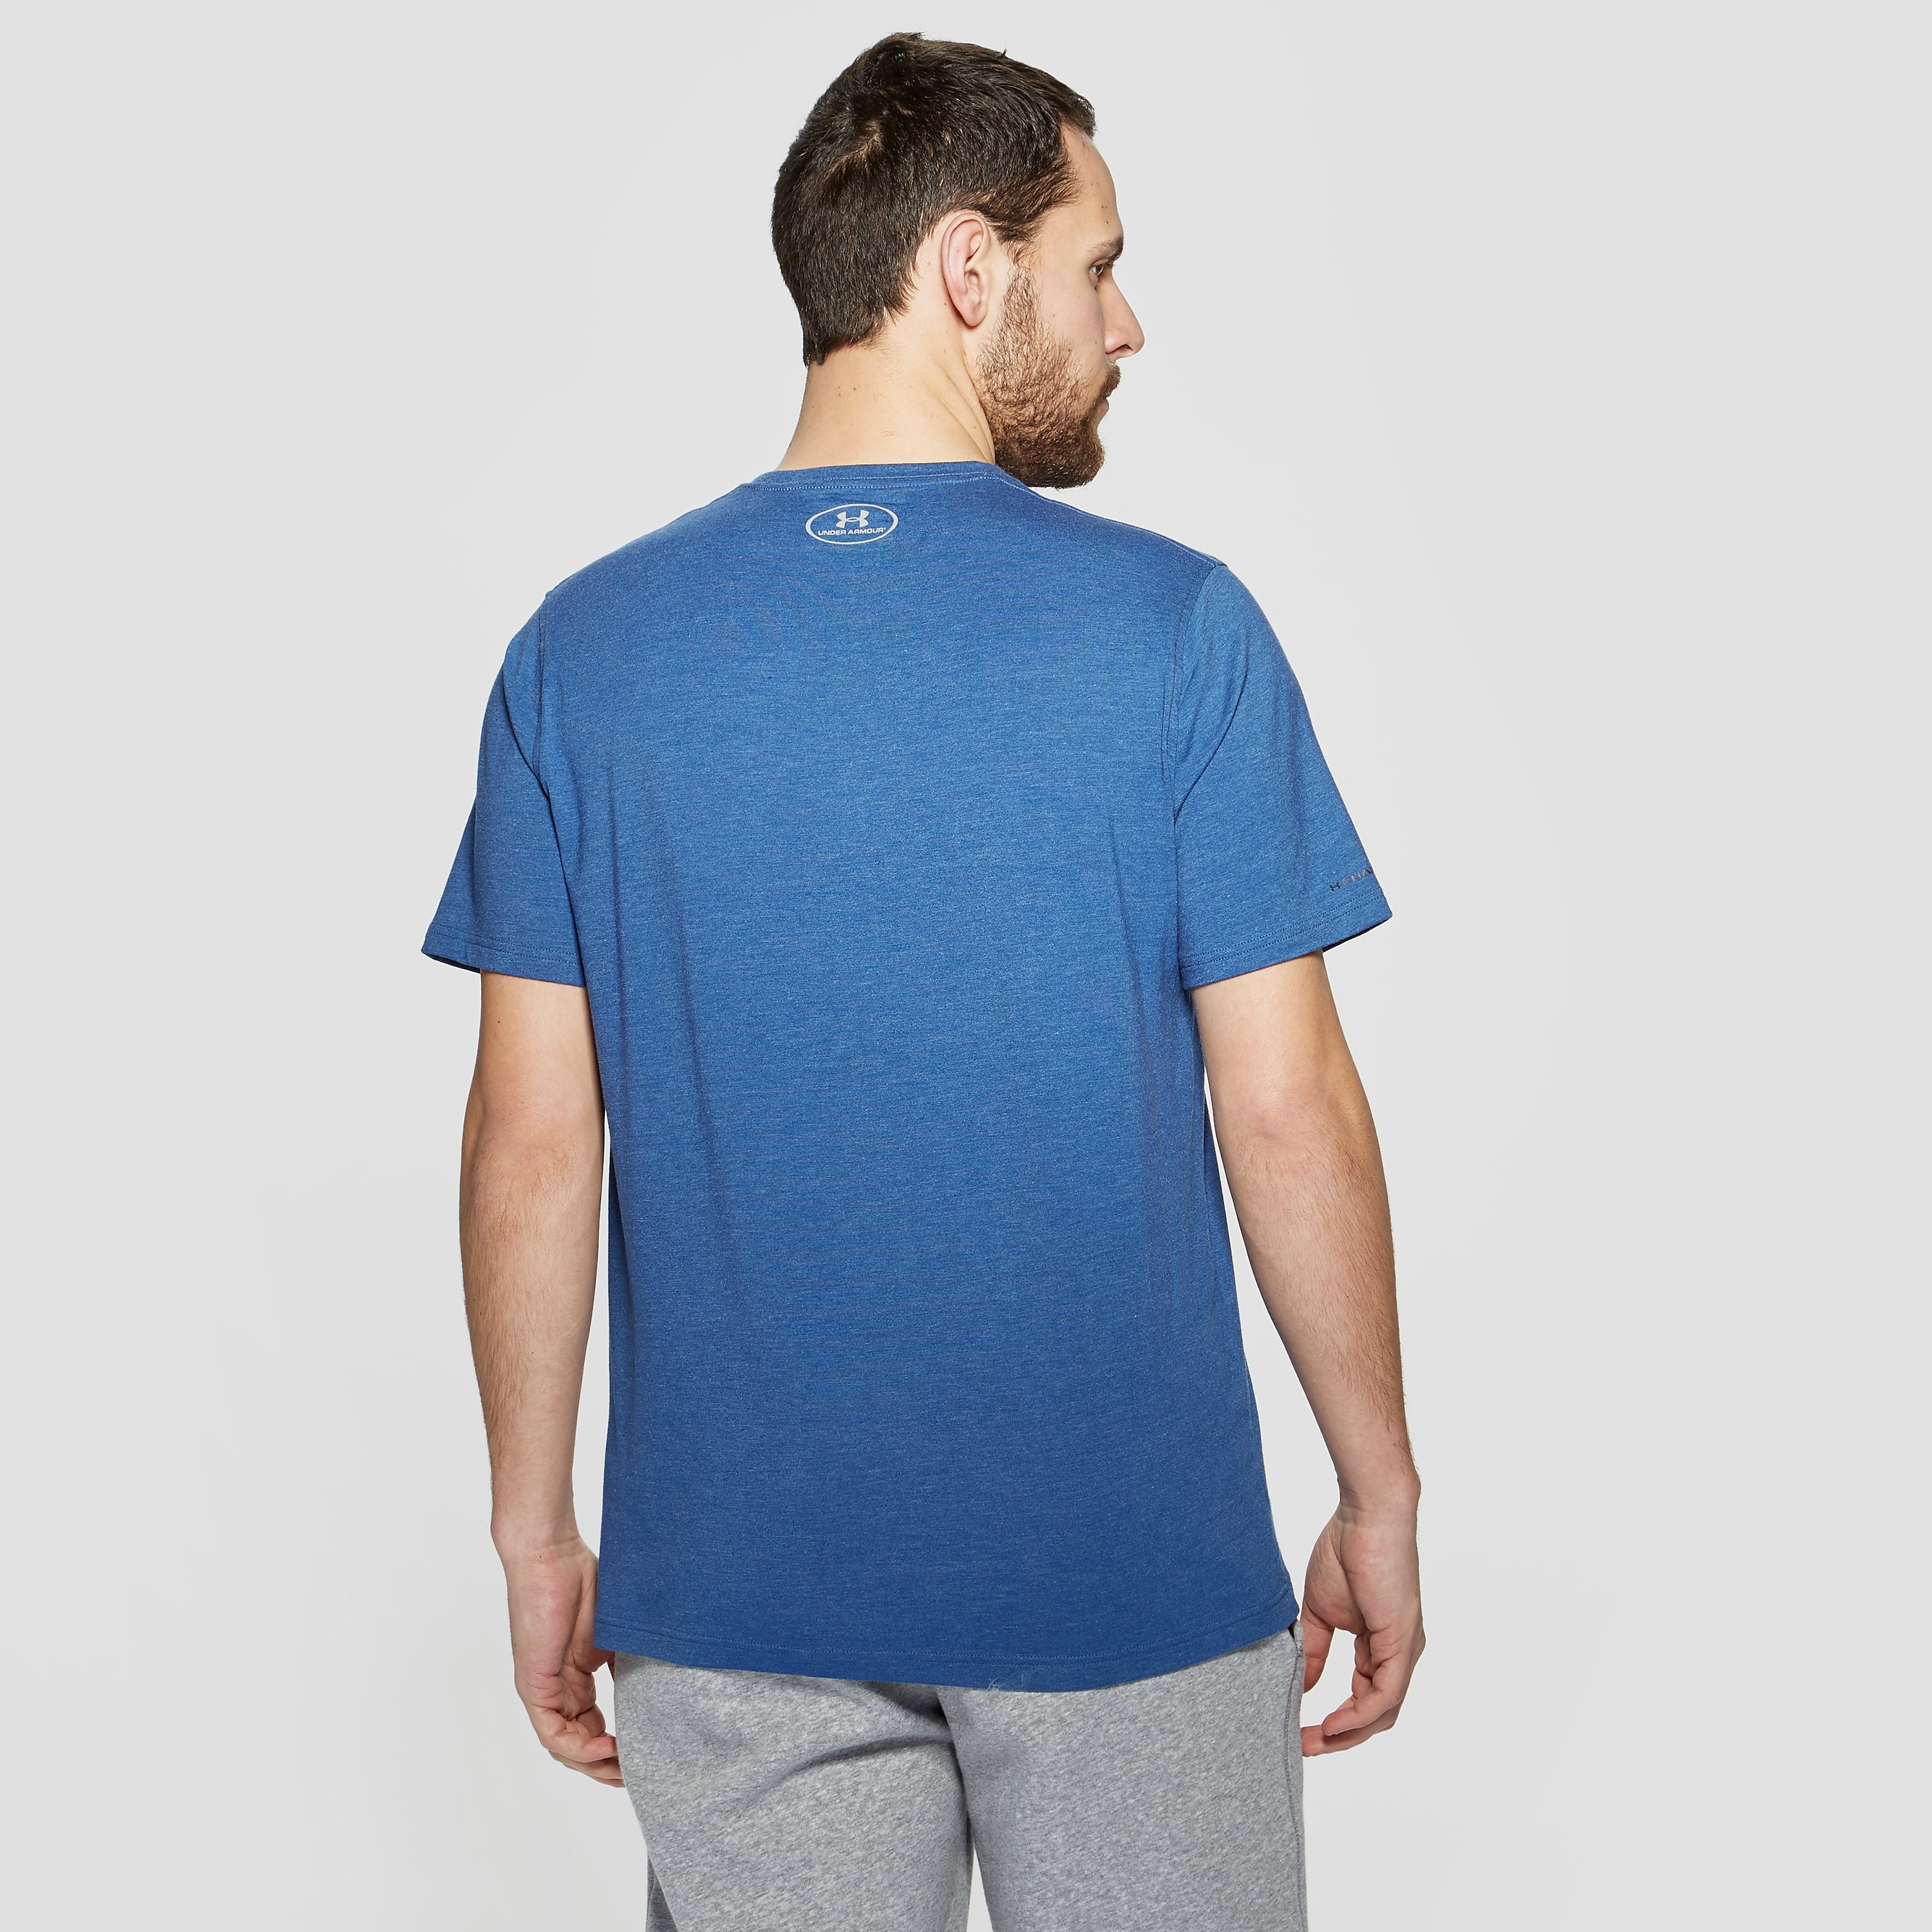 Under Armour Charged Cotton Men's Training T-shirt